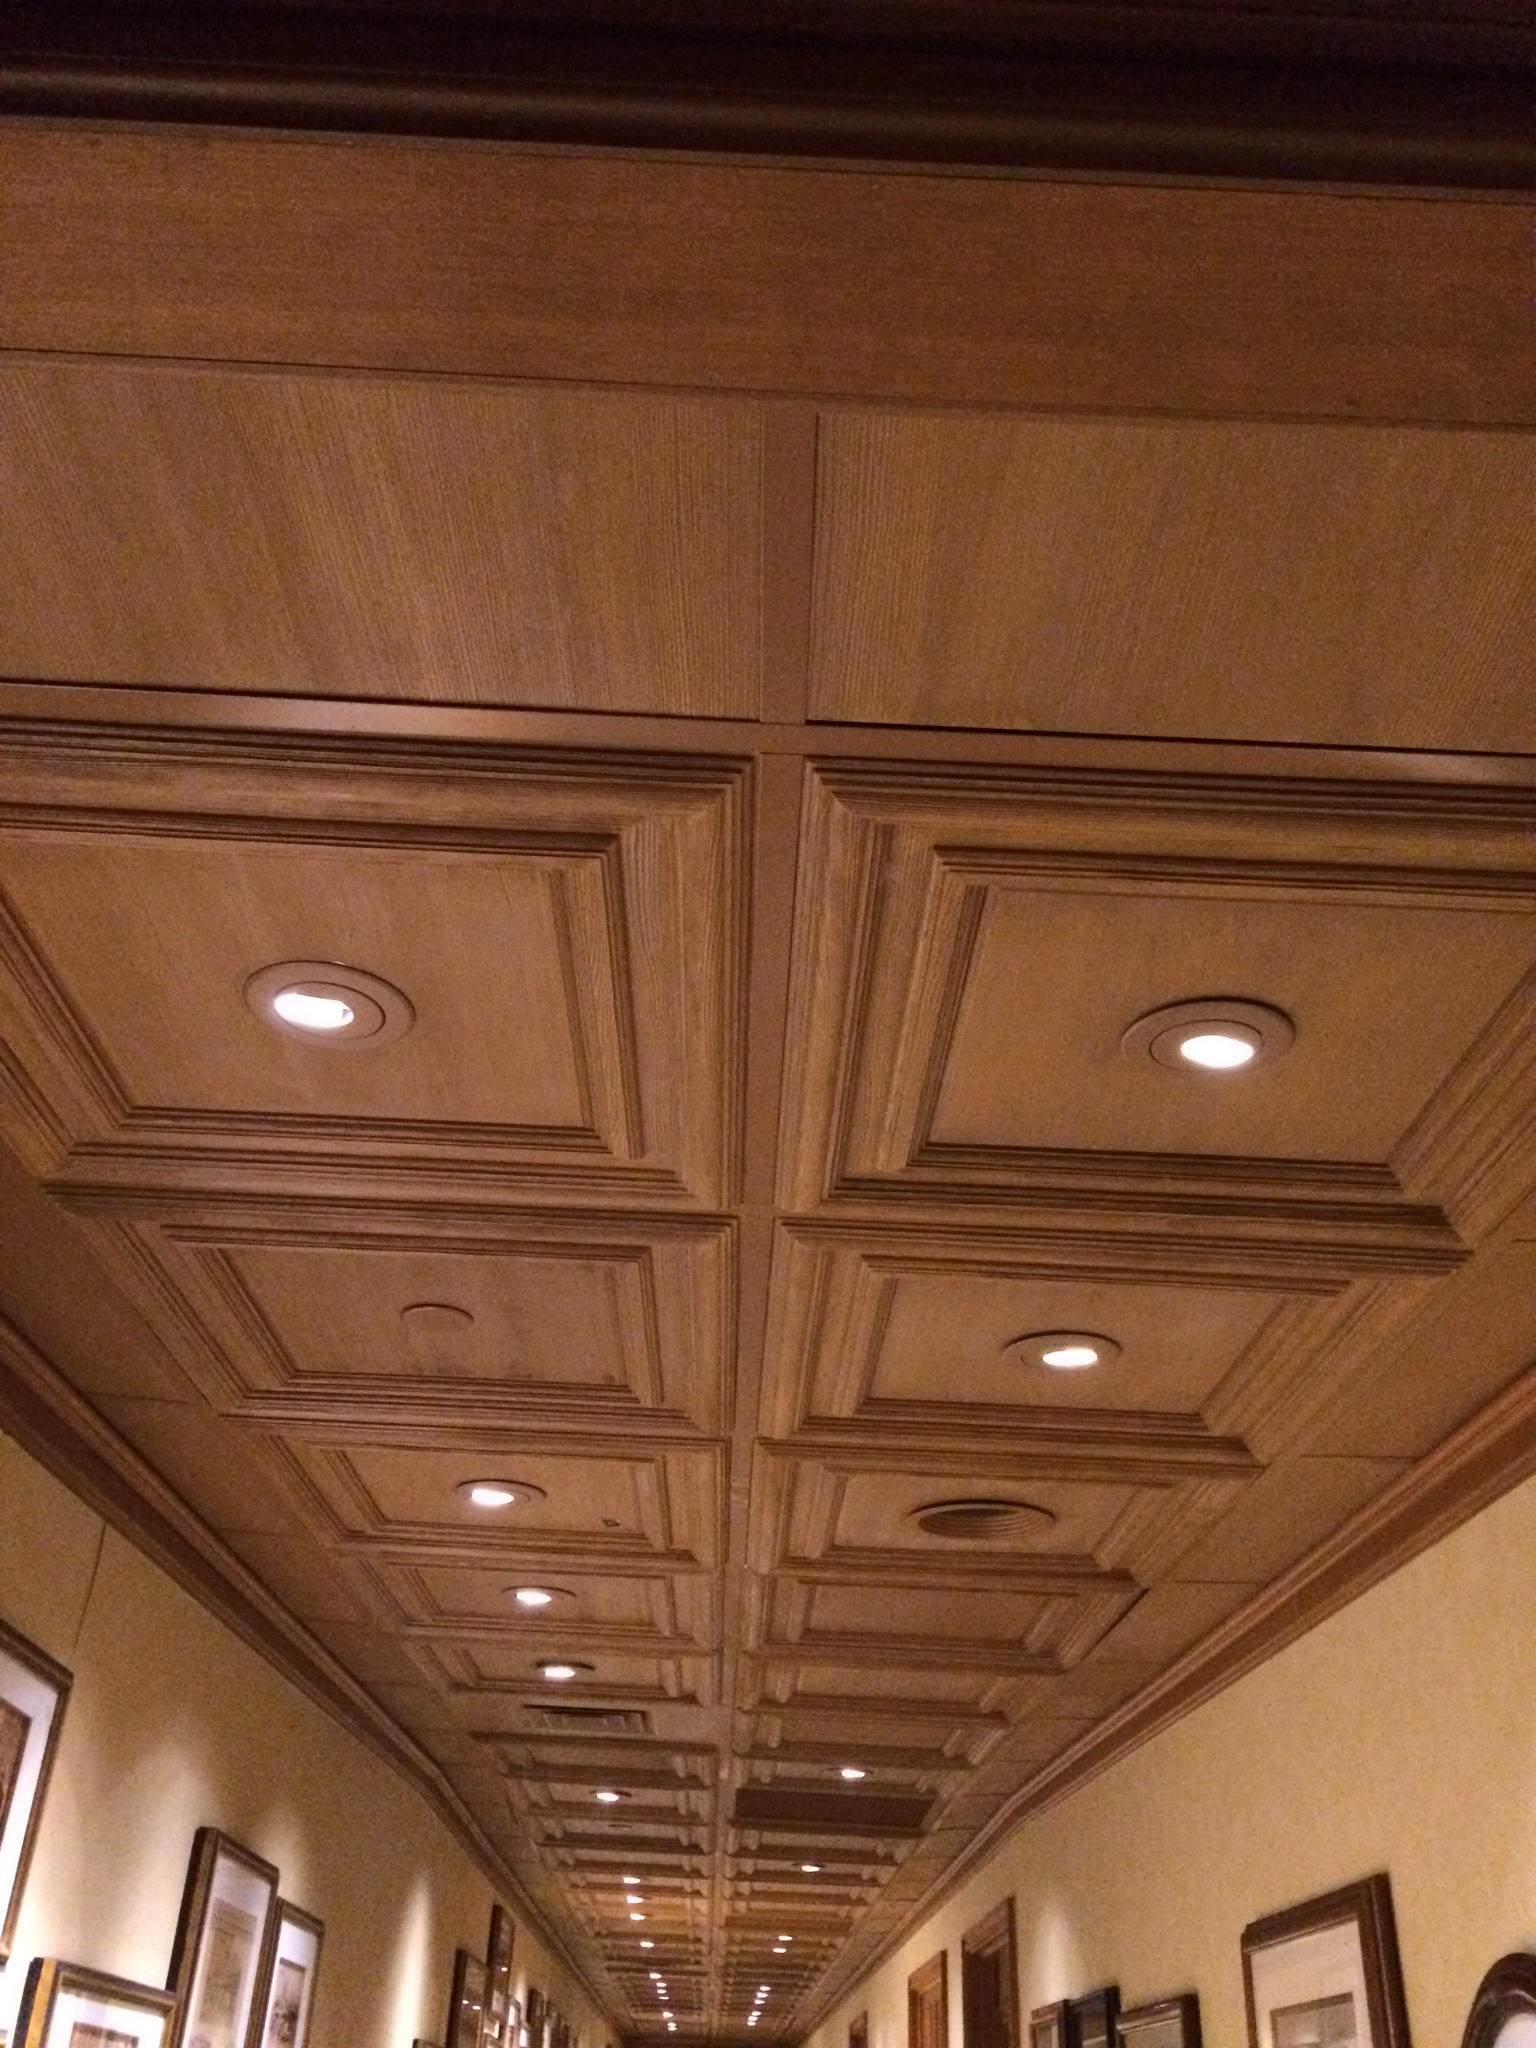 Classic Woodgrain Panel Ceiling Tile Mineral Composite Panels Above View Inc